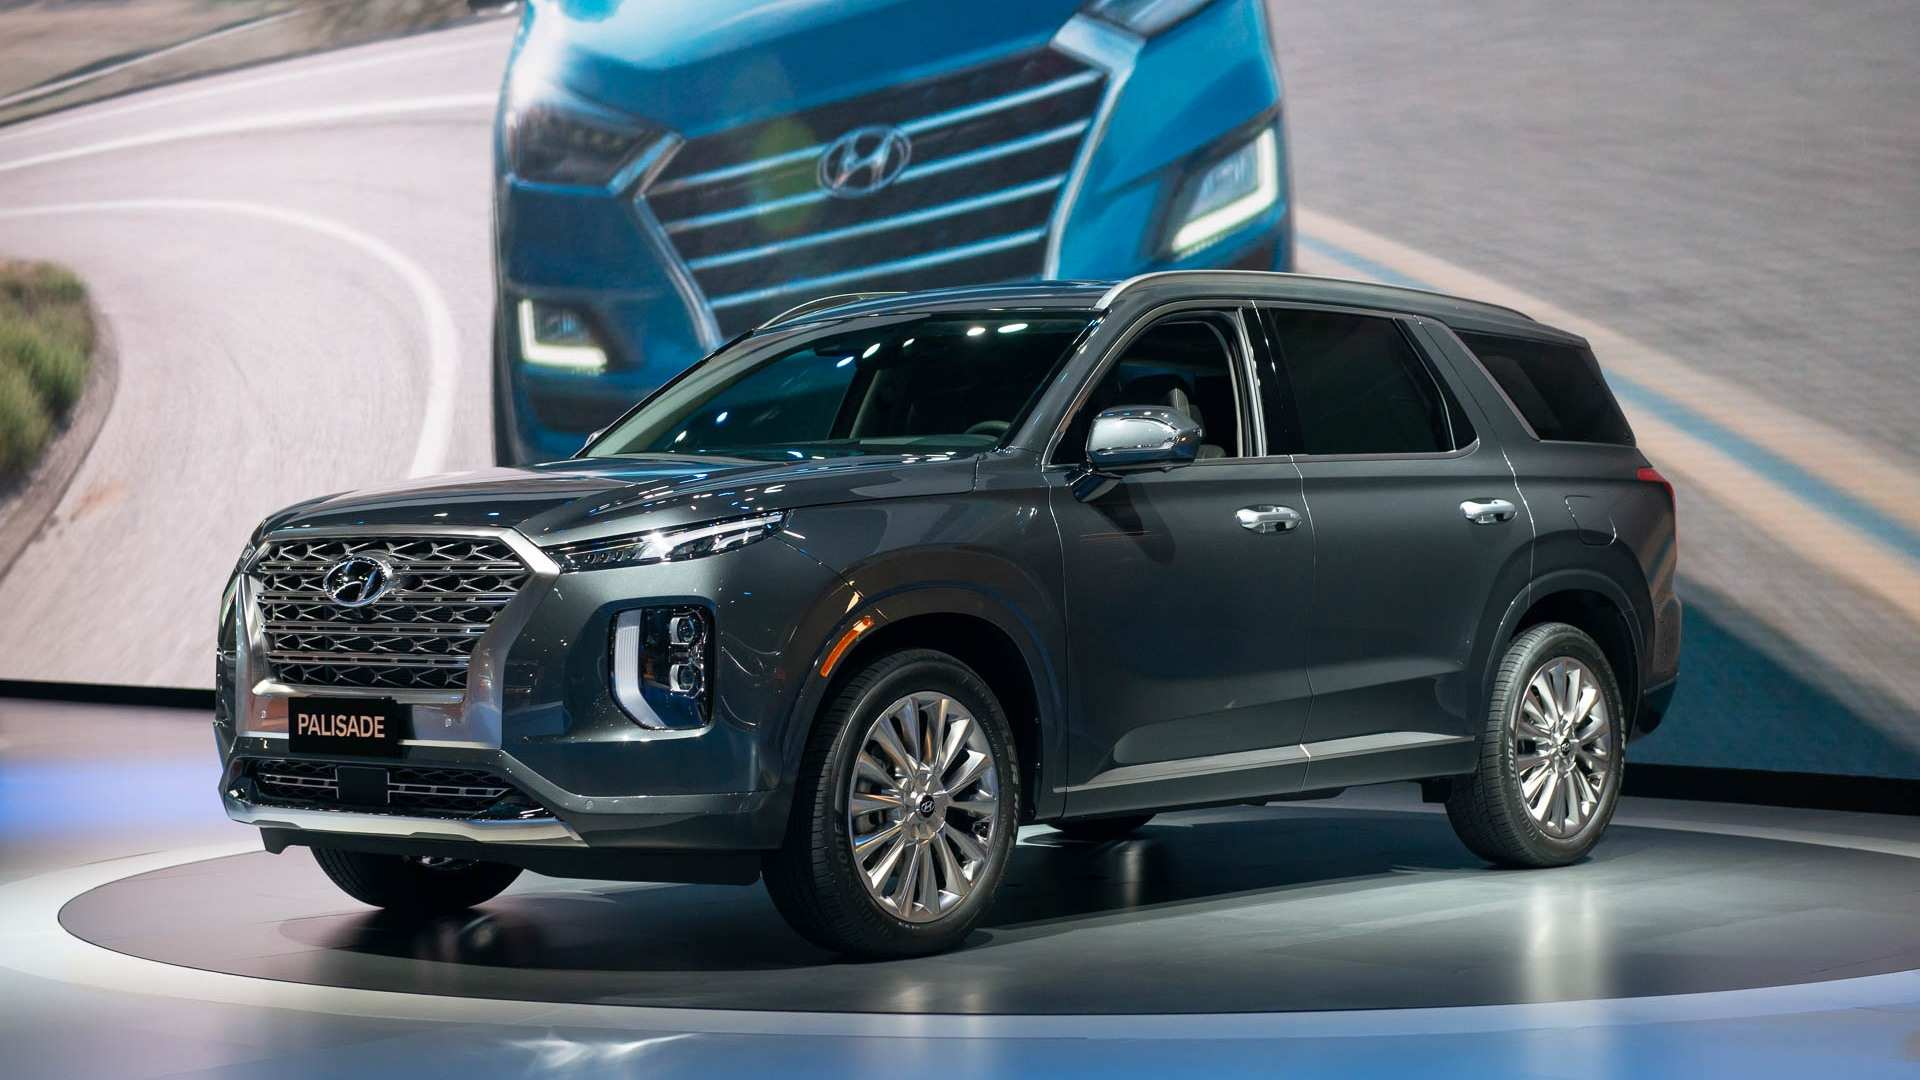 45 All New When Will The 2020 Hyundai Palisade Be Available Concept with When Will The 2020 Hyundai Palisade Be Available